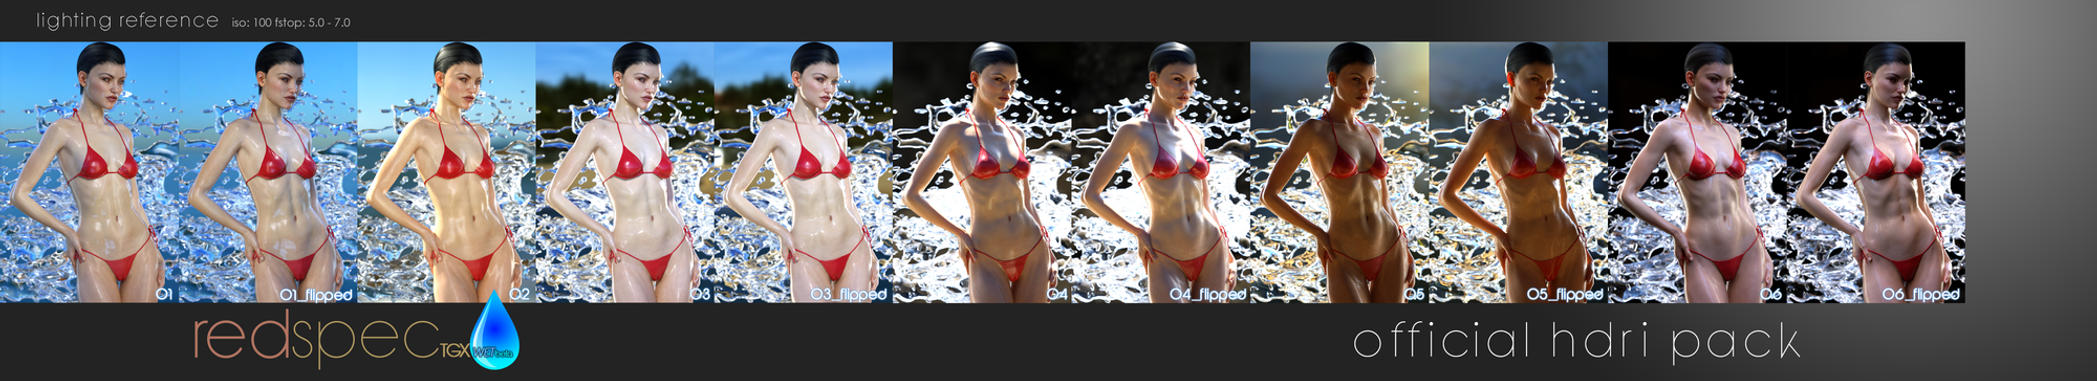 RedSpec TGX Wet Beta Official Promo HDRi-Pack by TRRazor